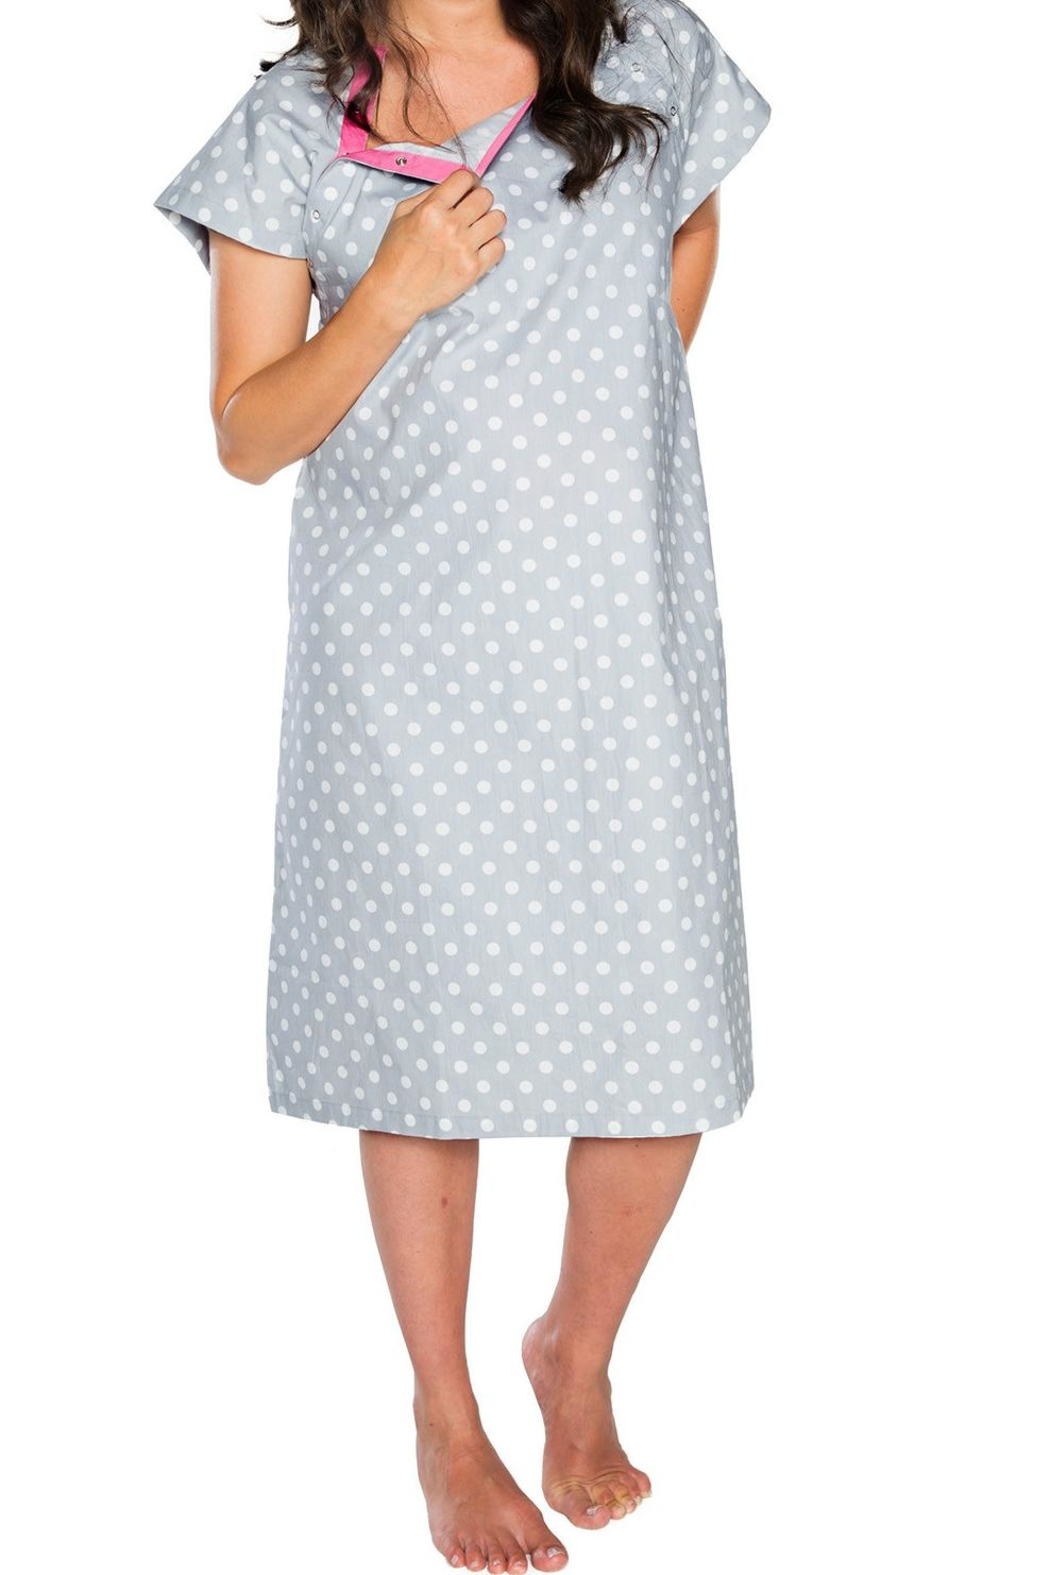 Baby BE Mine Hospital Birthing Gown from Alabama by A Nurturing ...